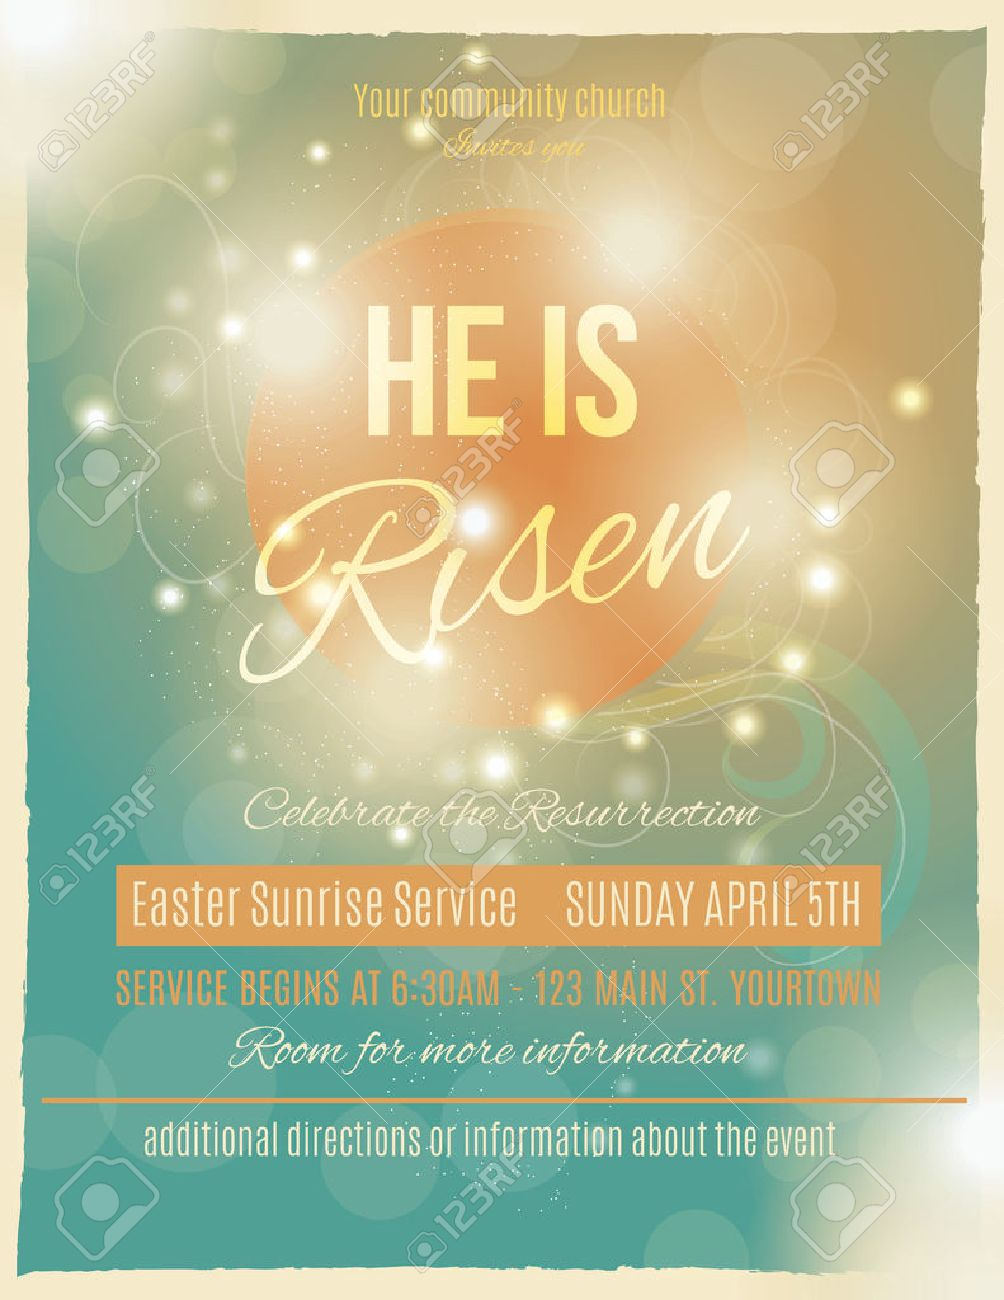 bright and shining he is risen easter sunrise service flyer or bright and shining he is risen easter sunrise service flyer or poster template stock vector